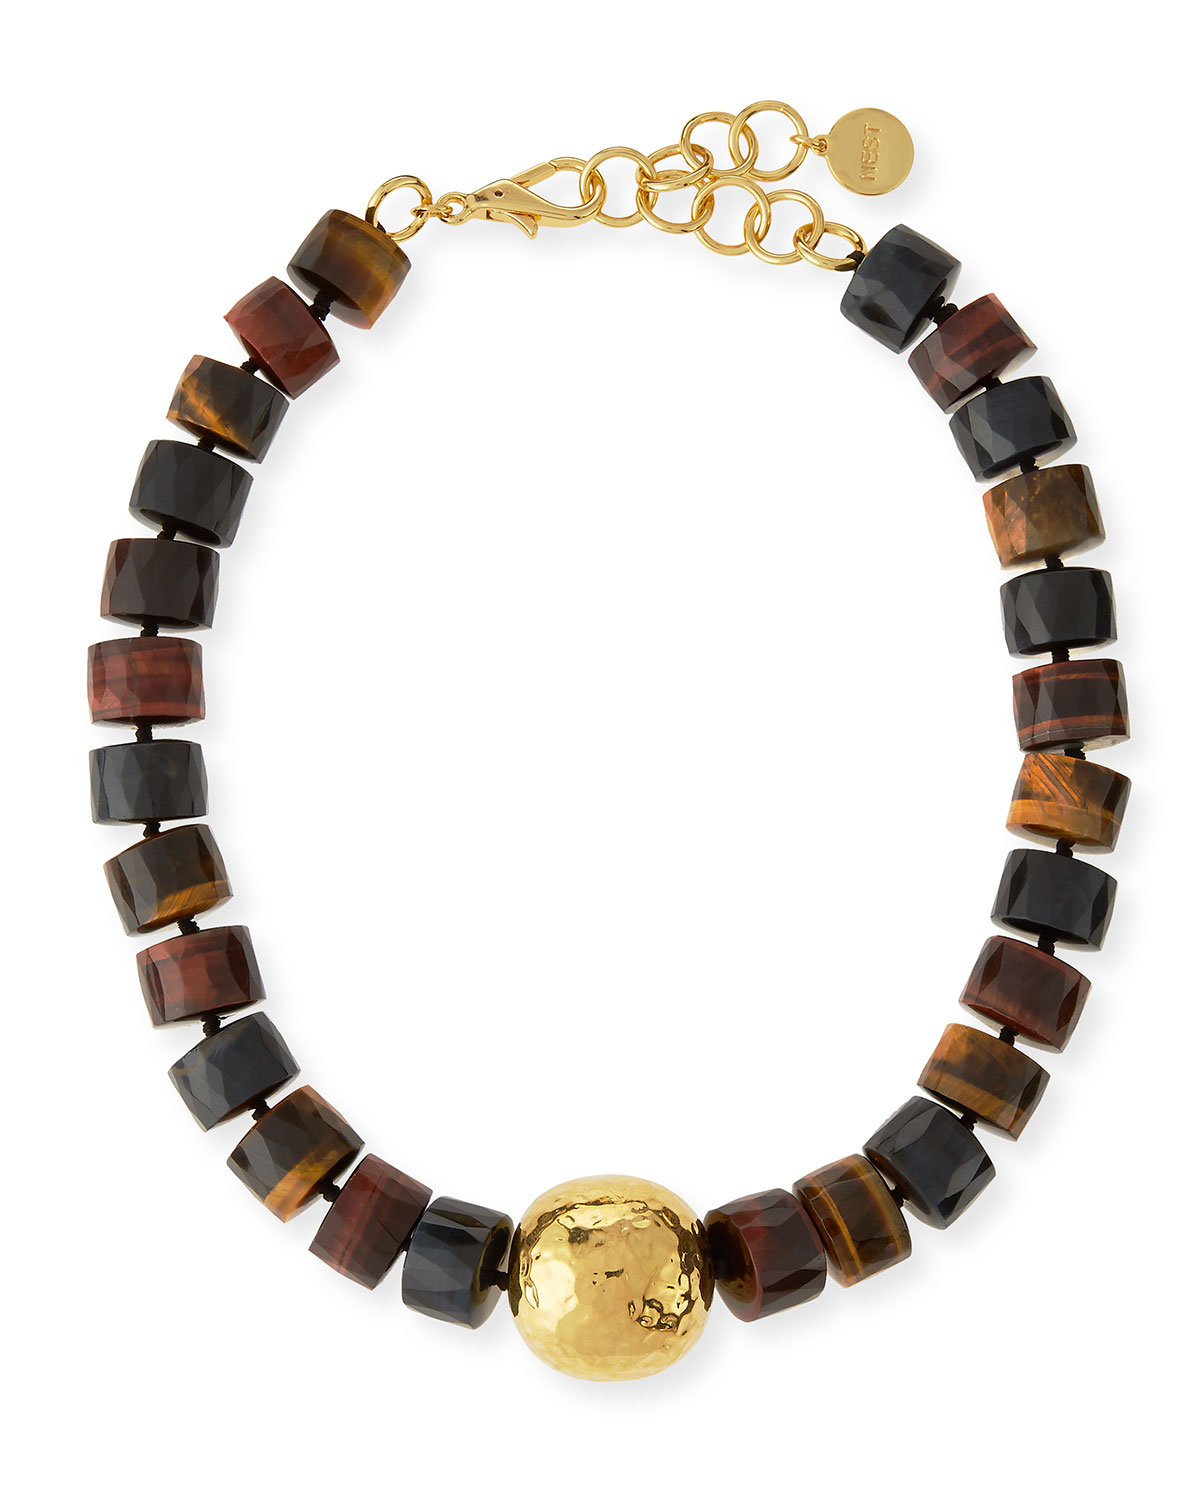 Tiger's Eye Statement Necklace - NEST Jewelry